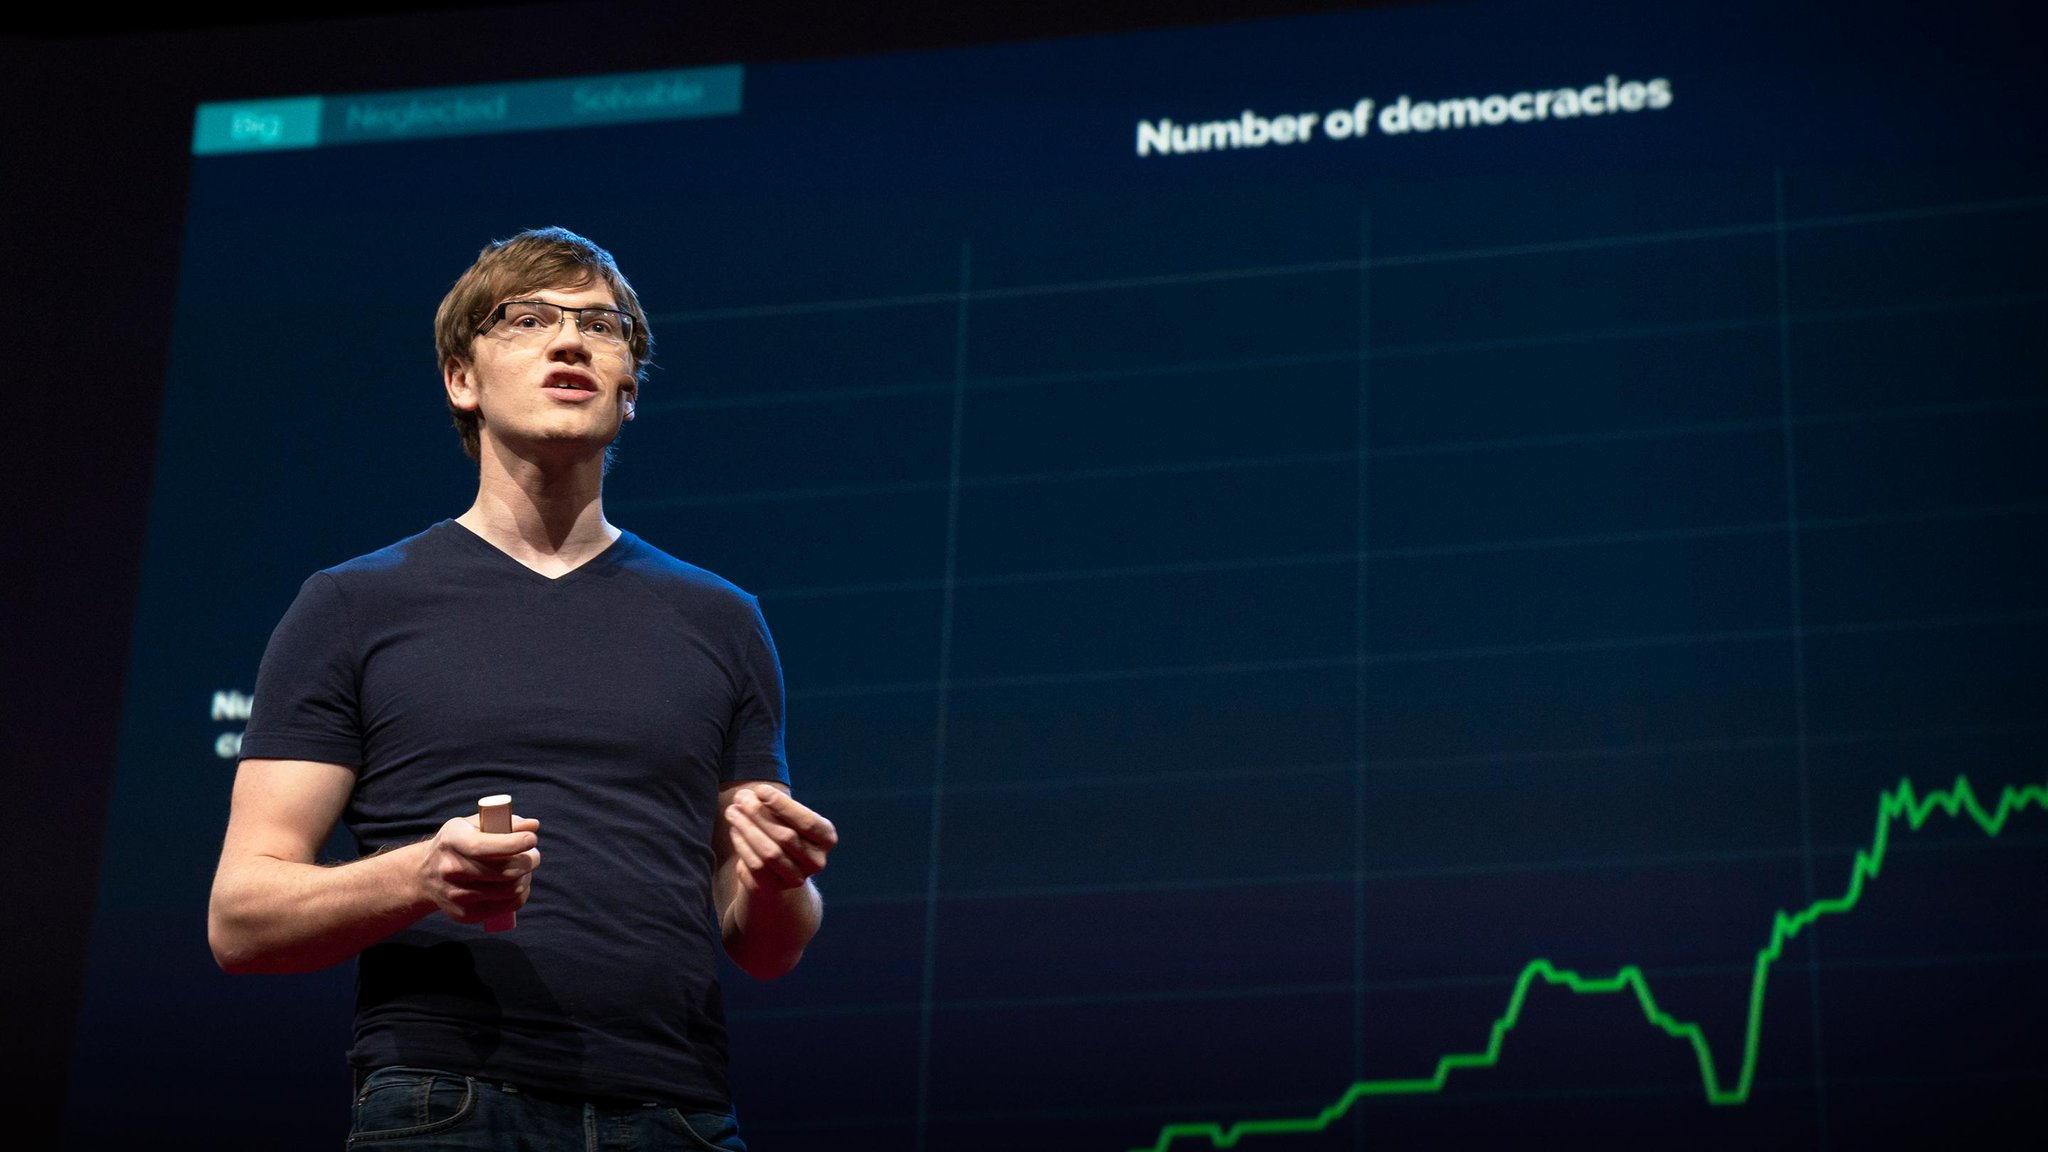 How can we do the most good for the world? @willmacaskill https://t.co/0lOh8CSUOy https://t.co/klyeooRdzq